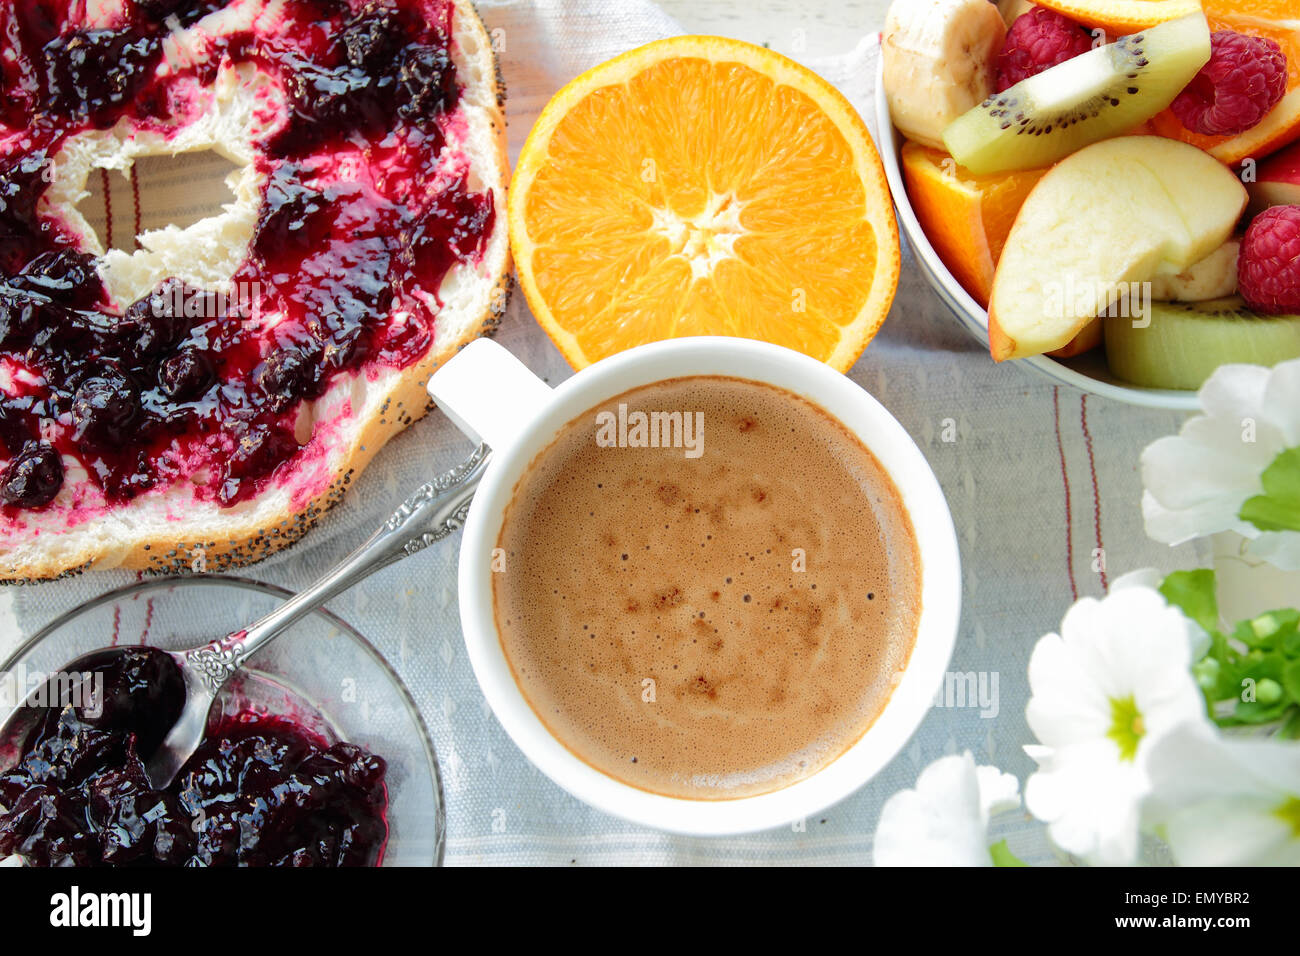 Breakfast with bread with currant jam, coffee and fruits - Stock Image